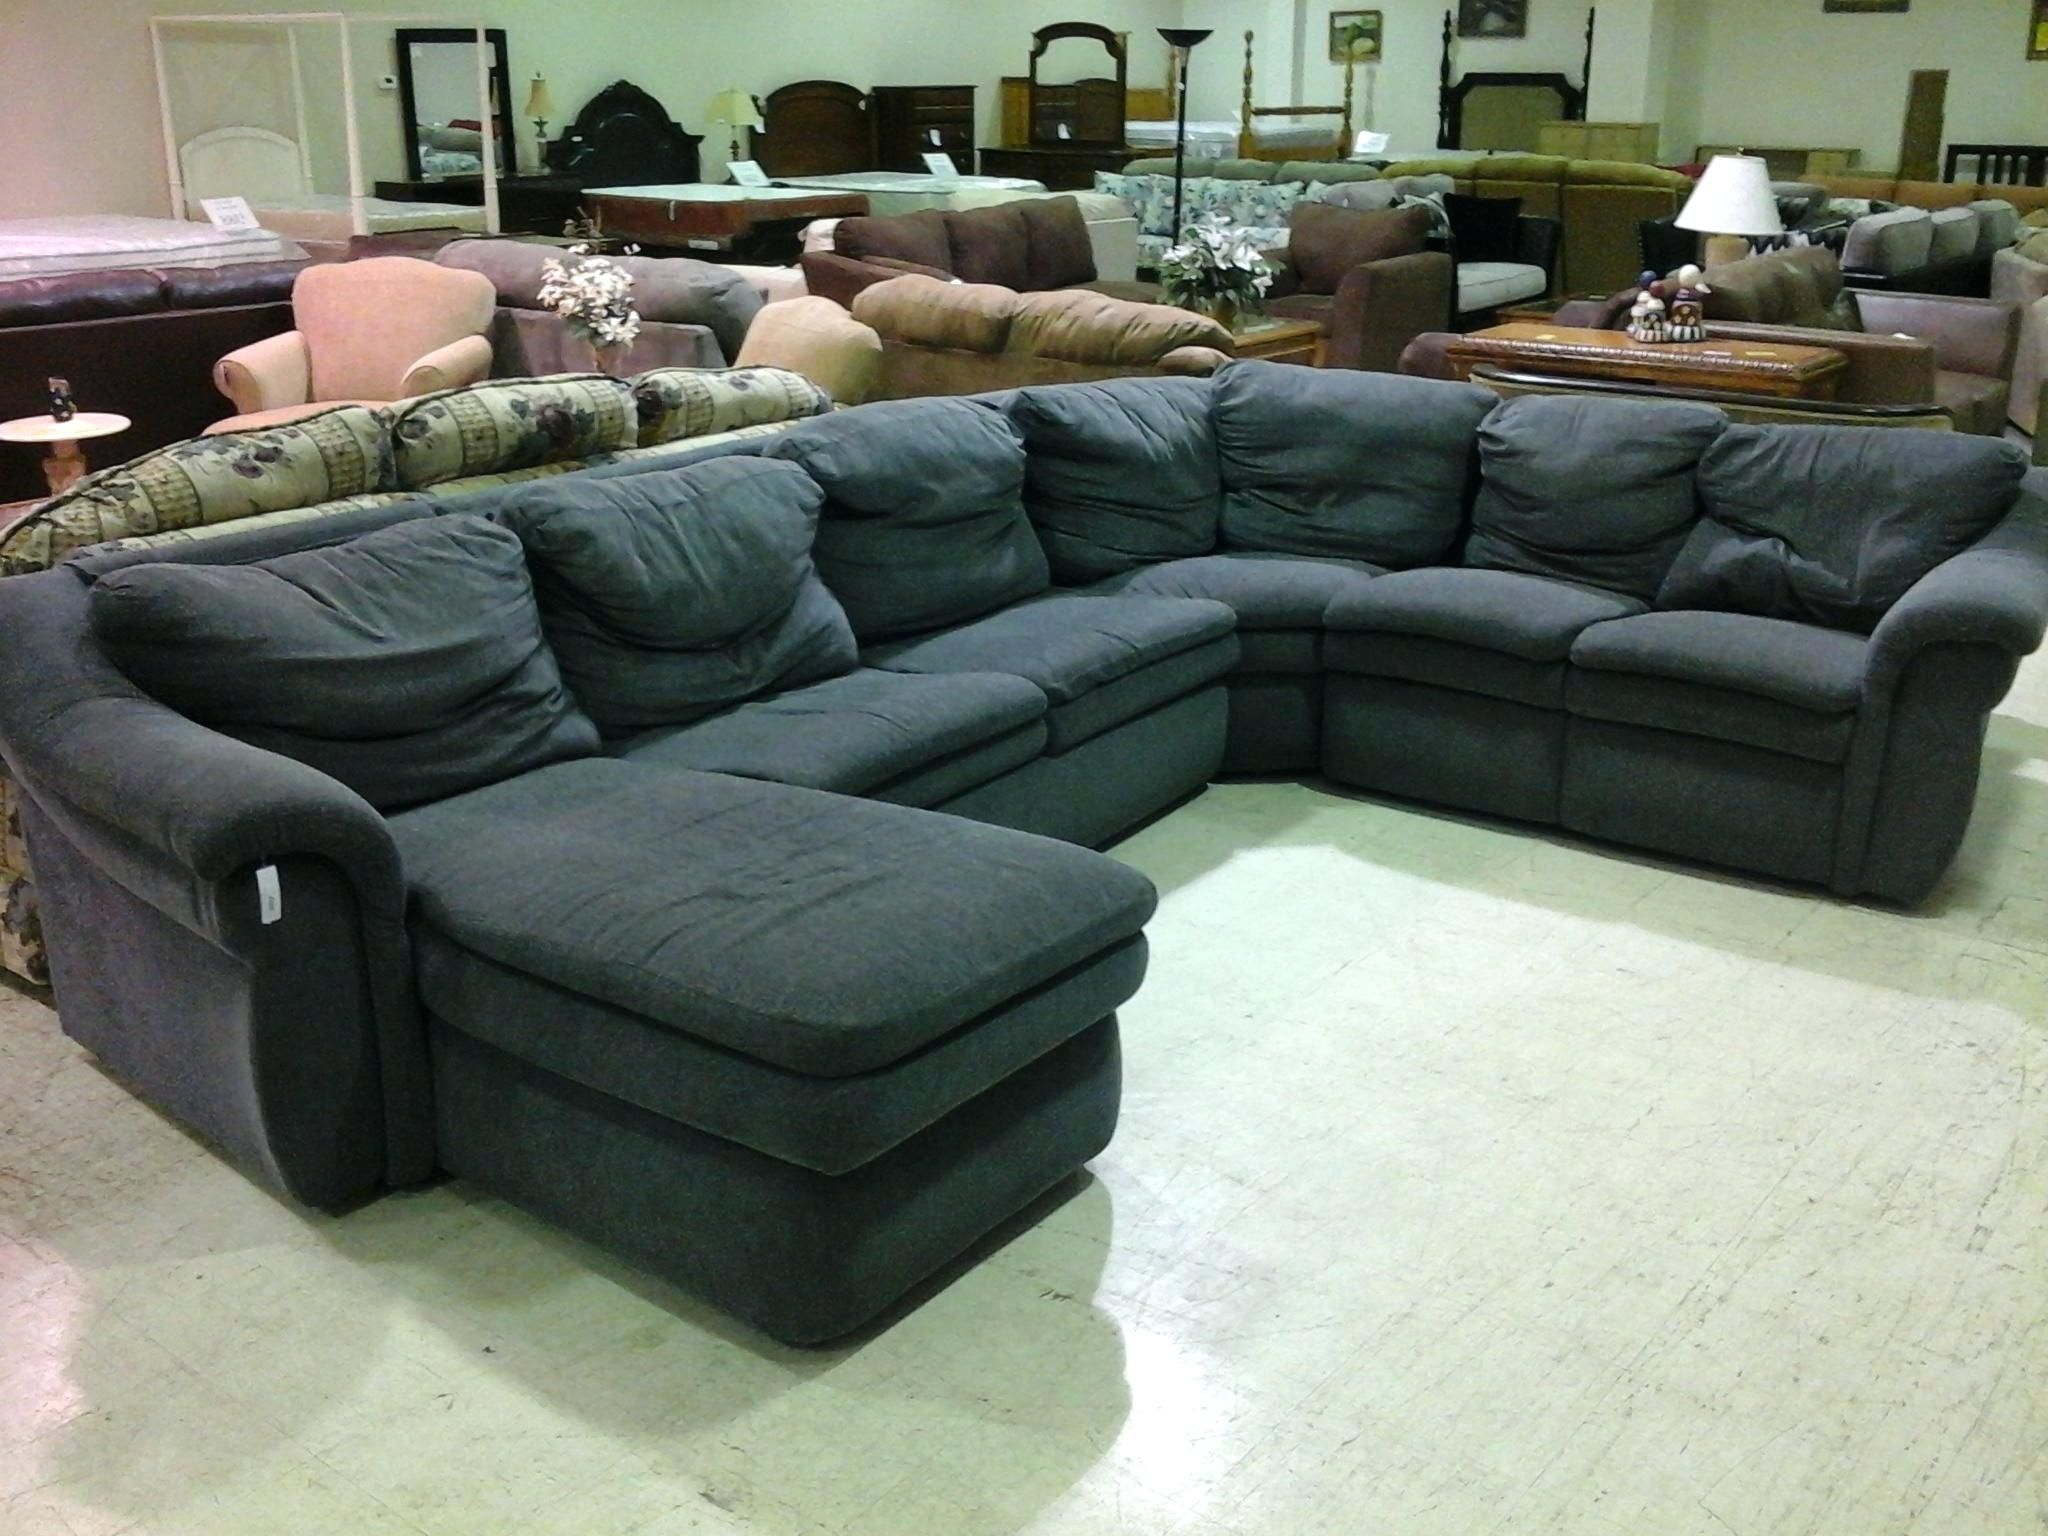 Clearance Sectional Sofas Within 2017 Sectional Sofa Sale Sa Couches For Near Me Liquidation Toronto (View 9 of 15)